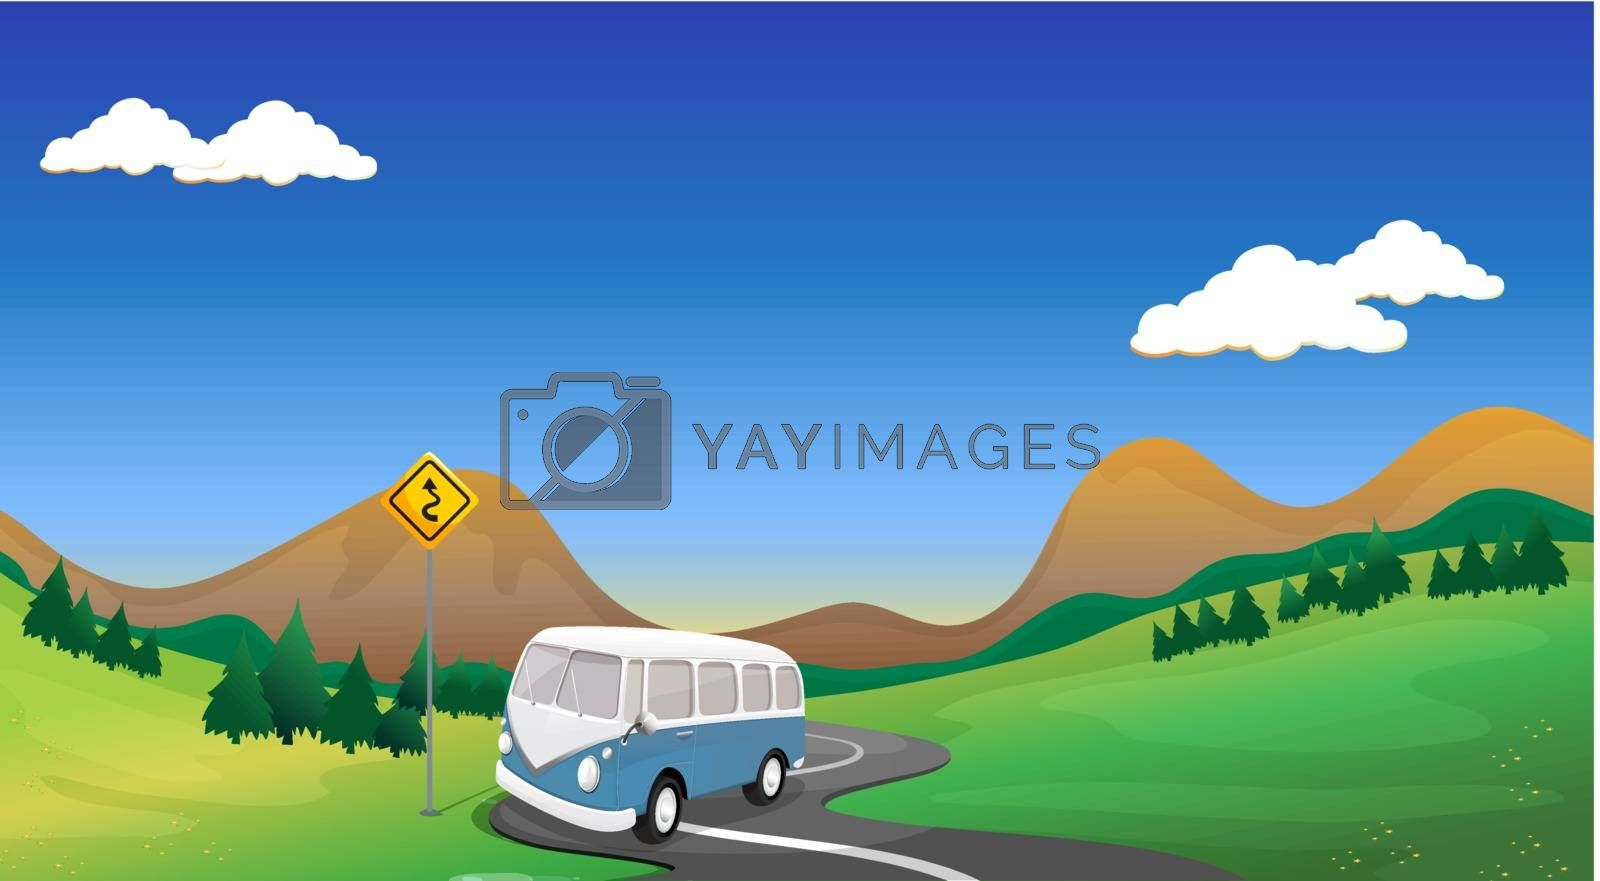 Illustration of a curve road with a bus